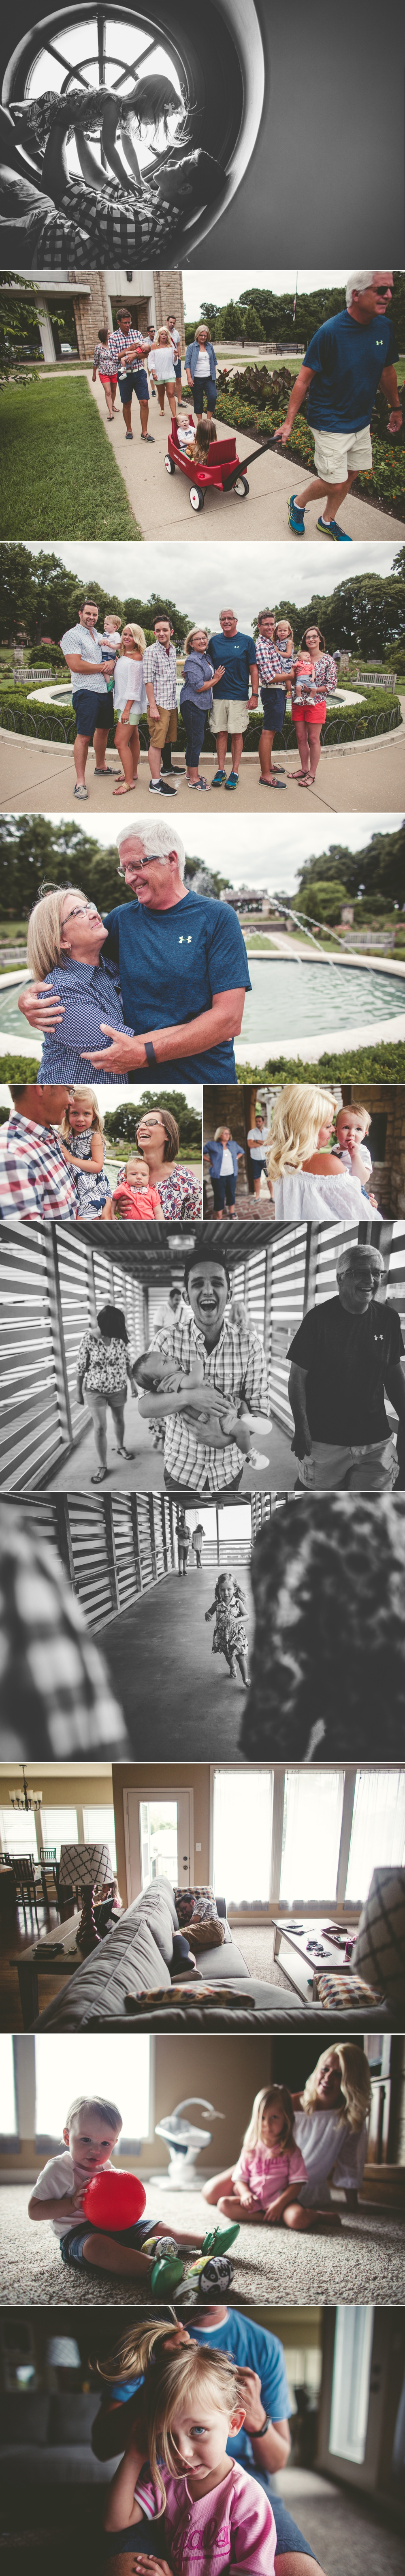 jason_domingues_photography_best_kansas_city_photographer_family_documentary_portrait_session_1